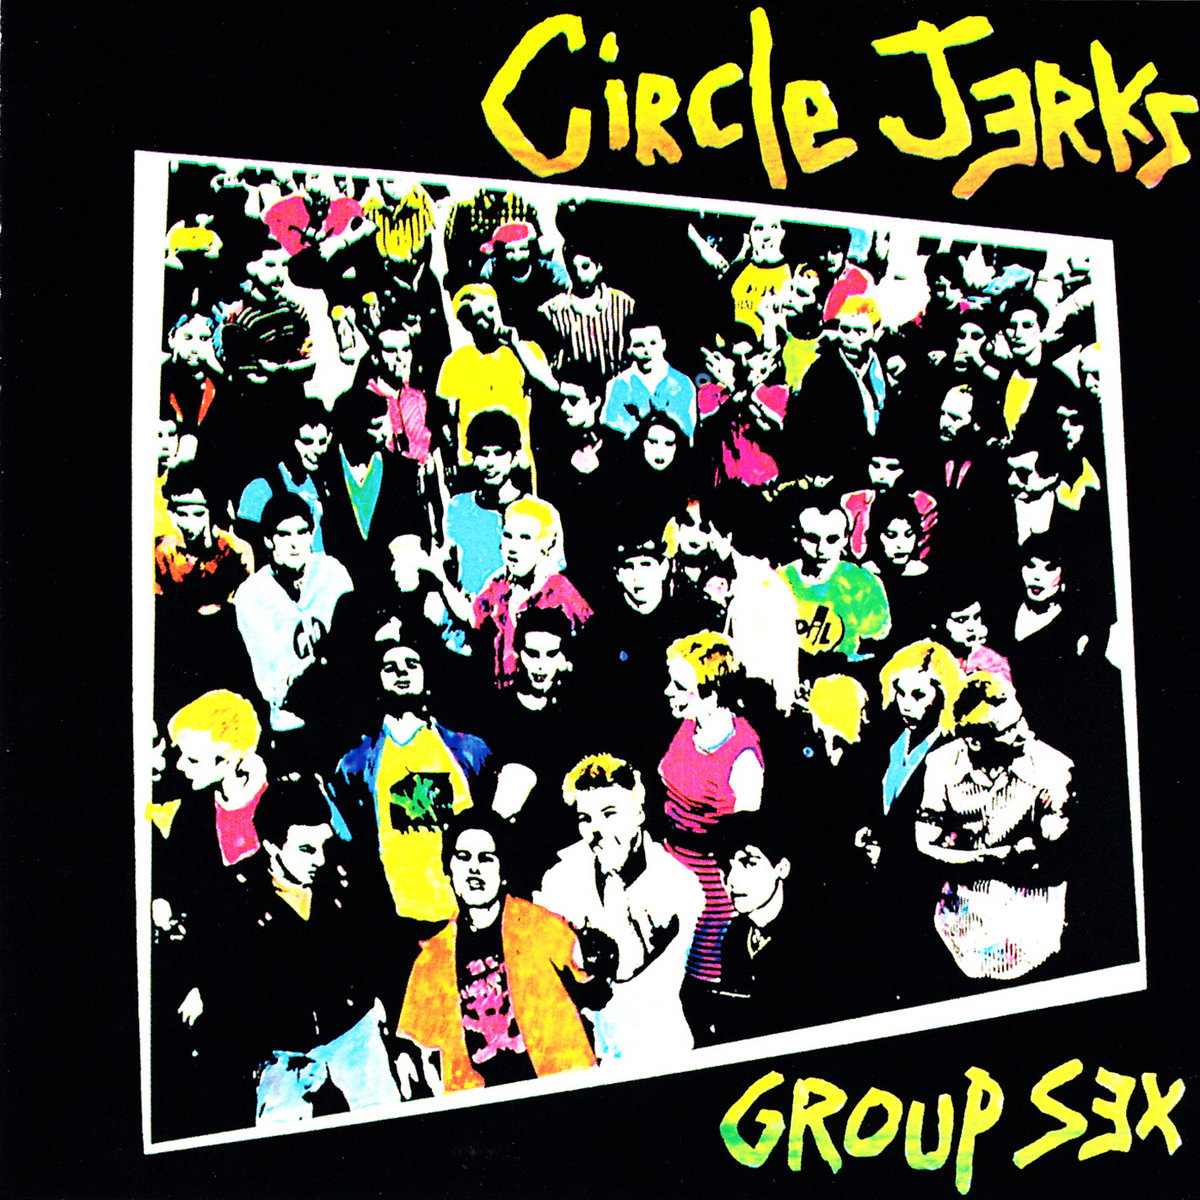 Circle Jerks kick off 40th anniversary 'Group Sex' shows in Canada